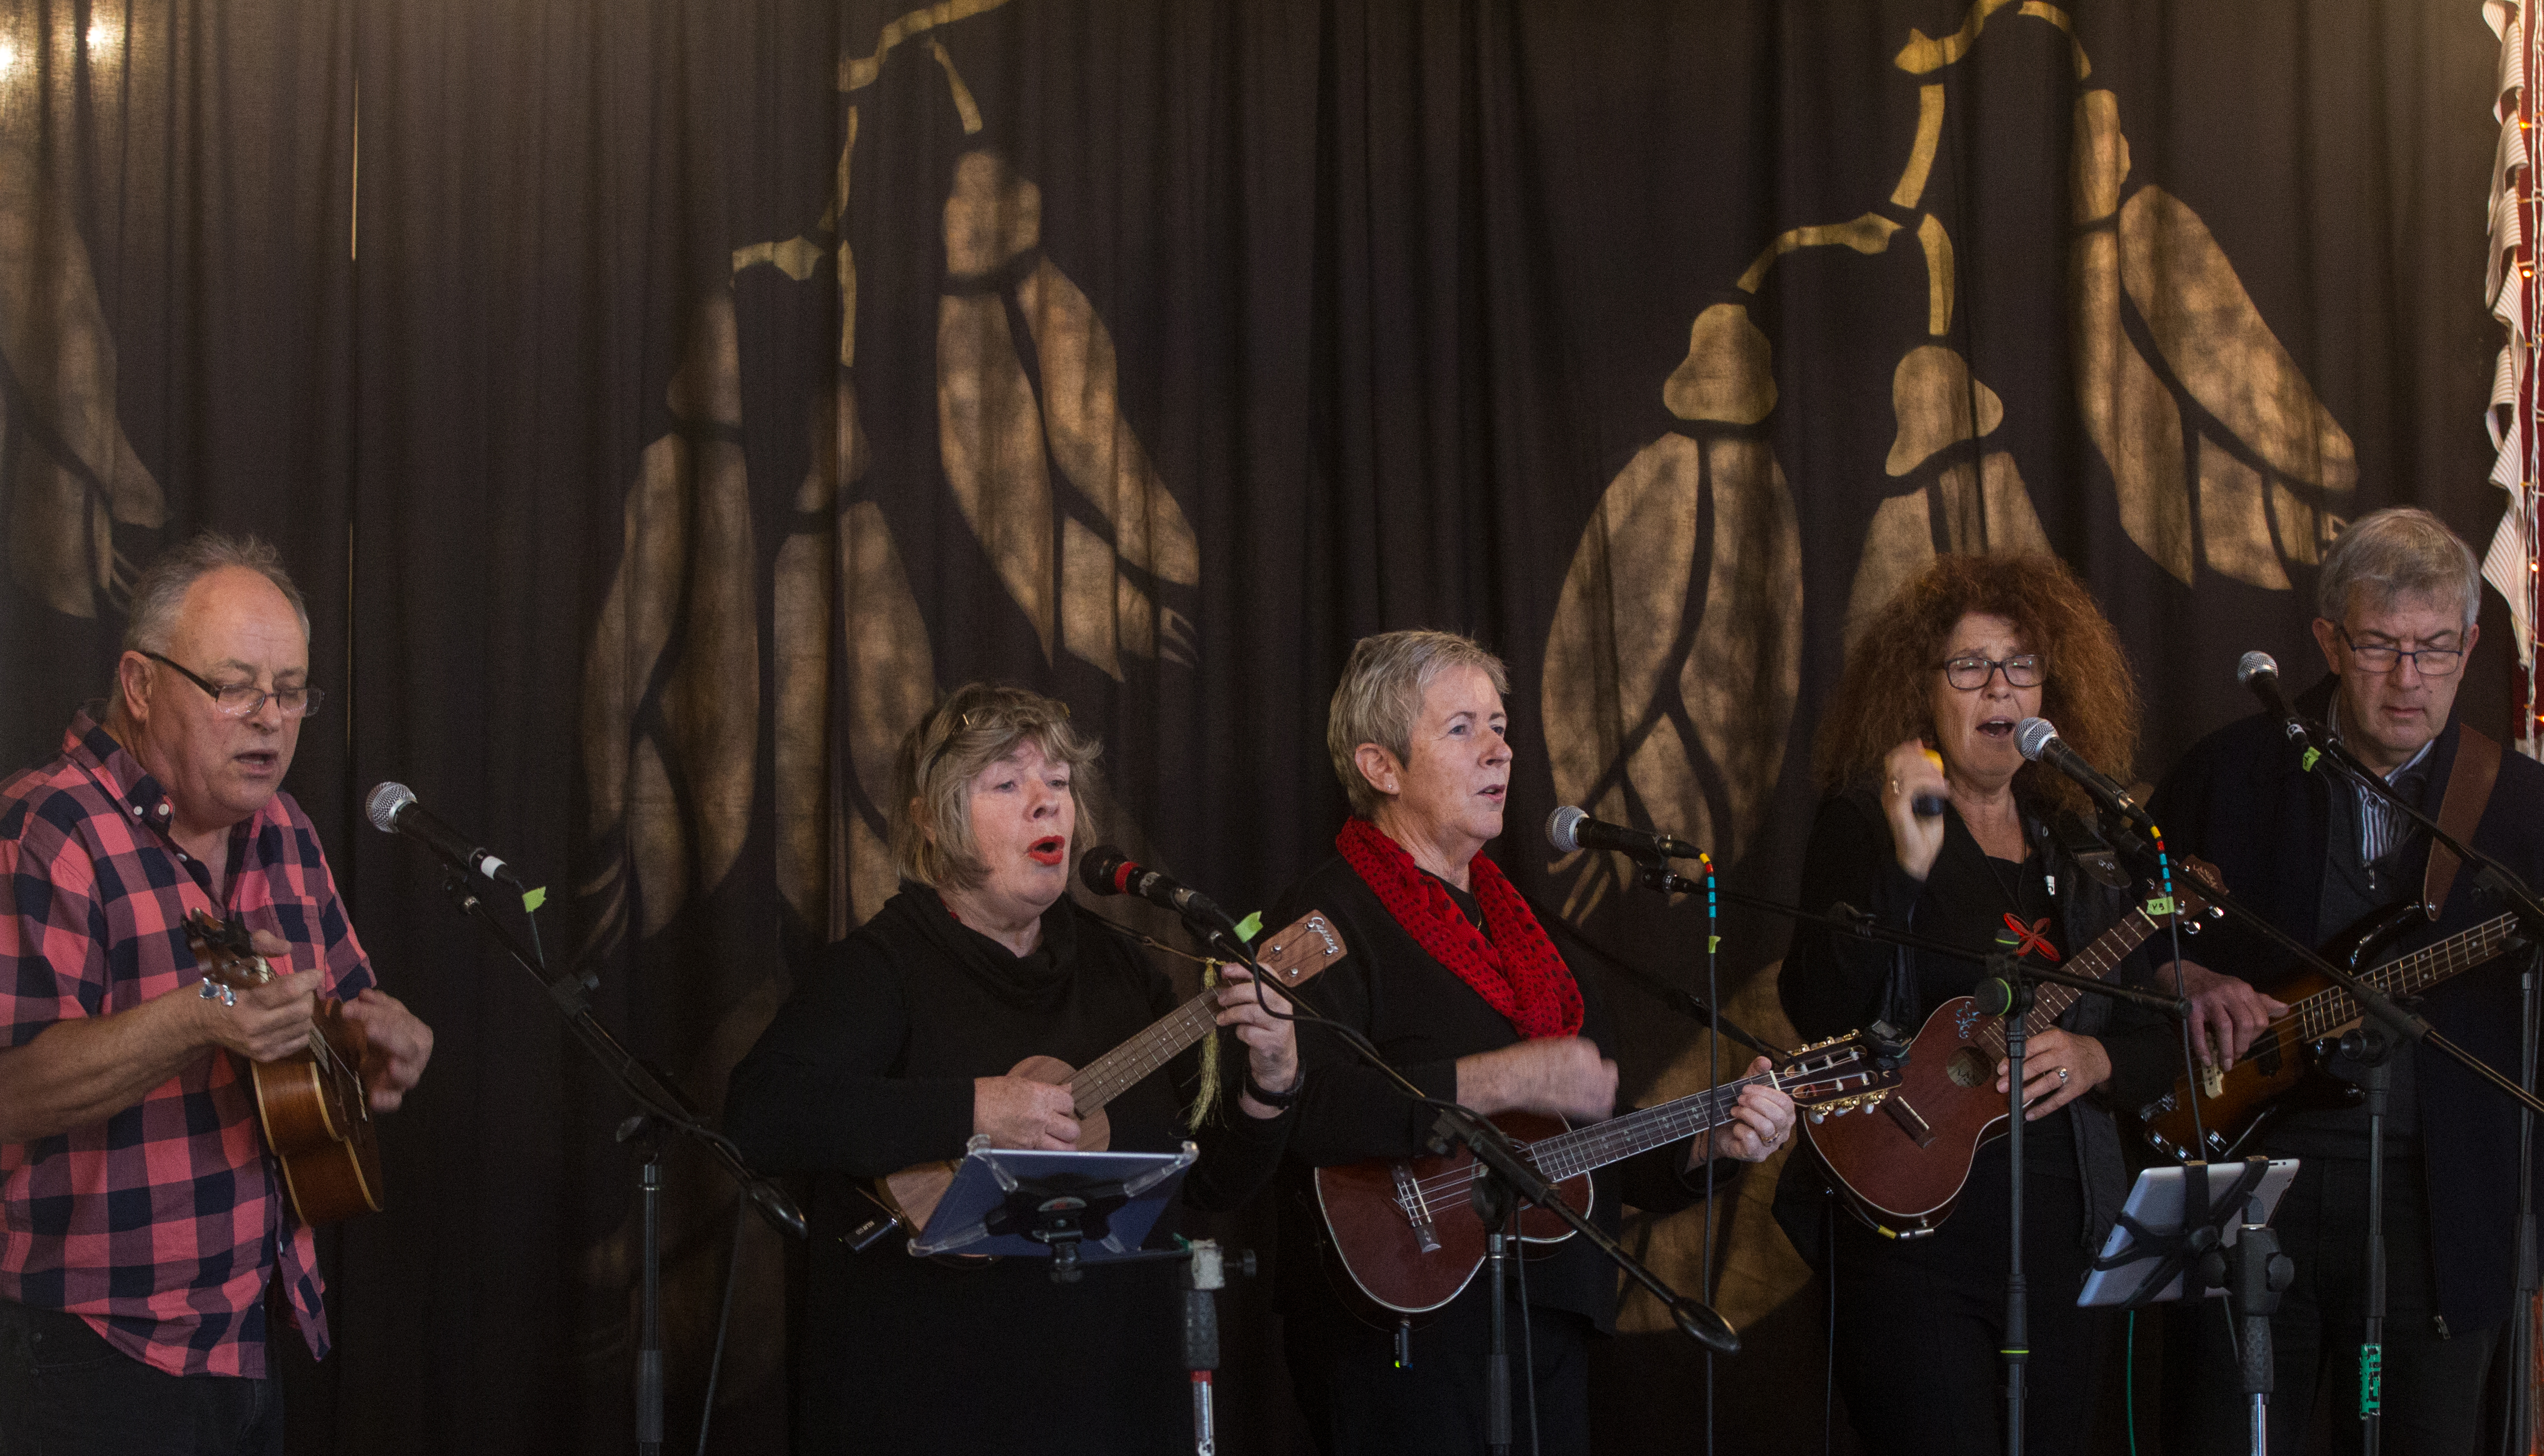 Music Month provides a stage for Rotorua musicians of all